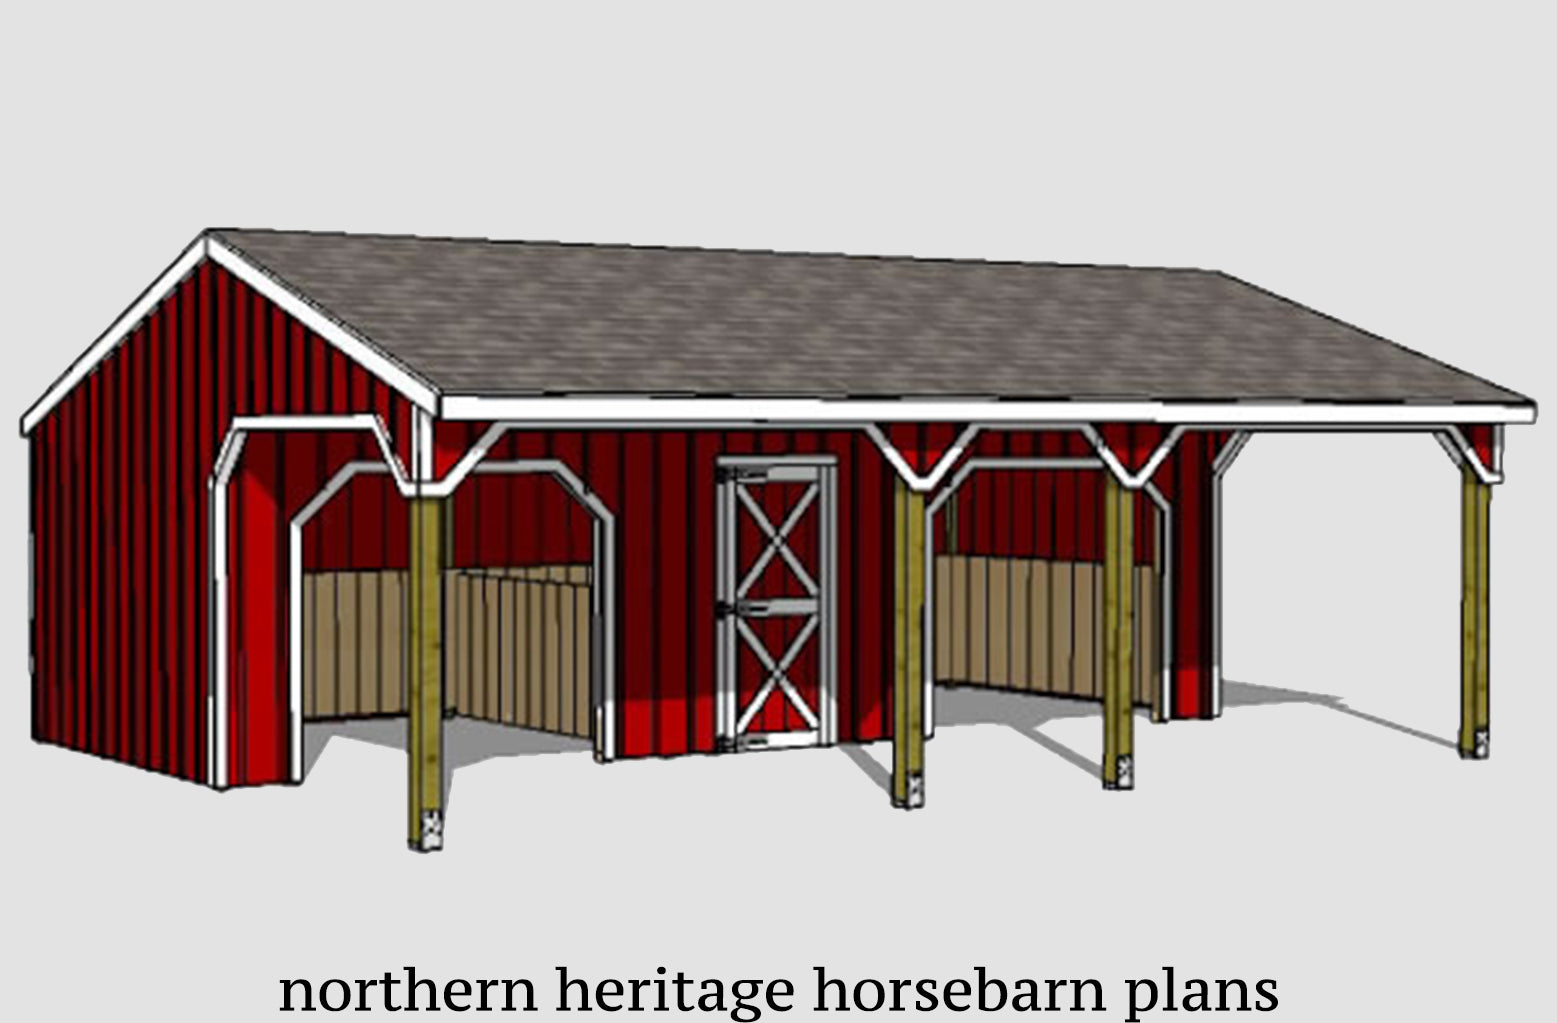 22x30 Lean To Run In Loafing Horse Barn Plan With Added Tack Room And Northern Heritage Horsebarn Plans